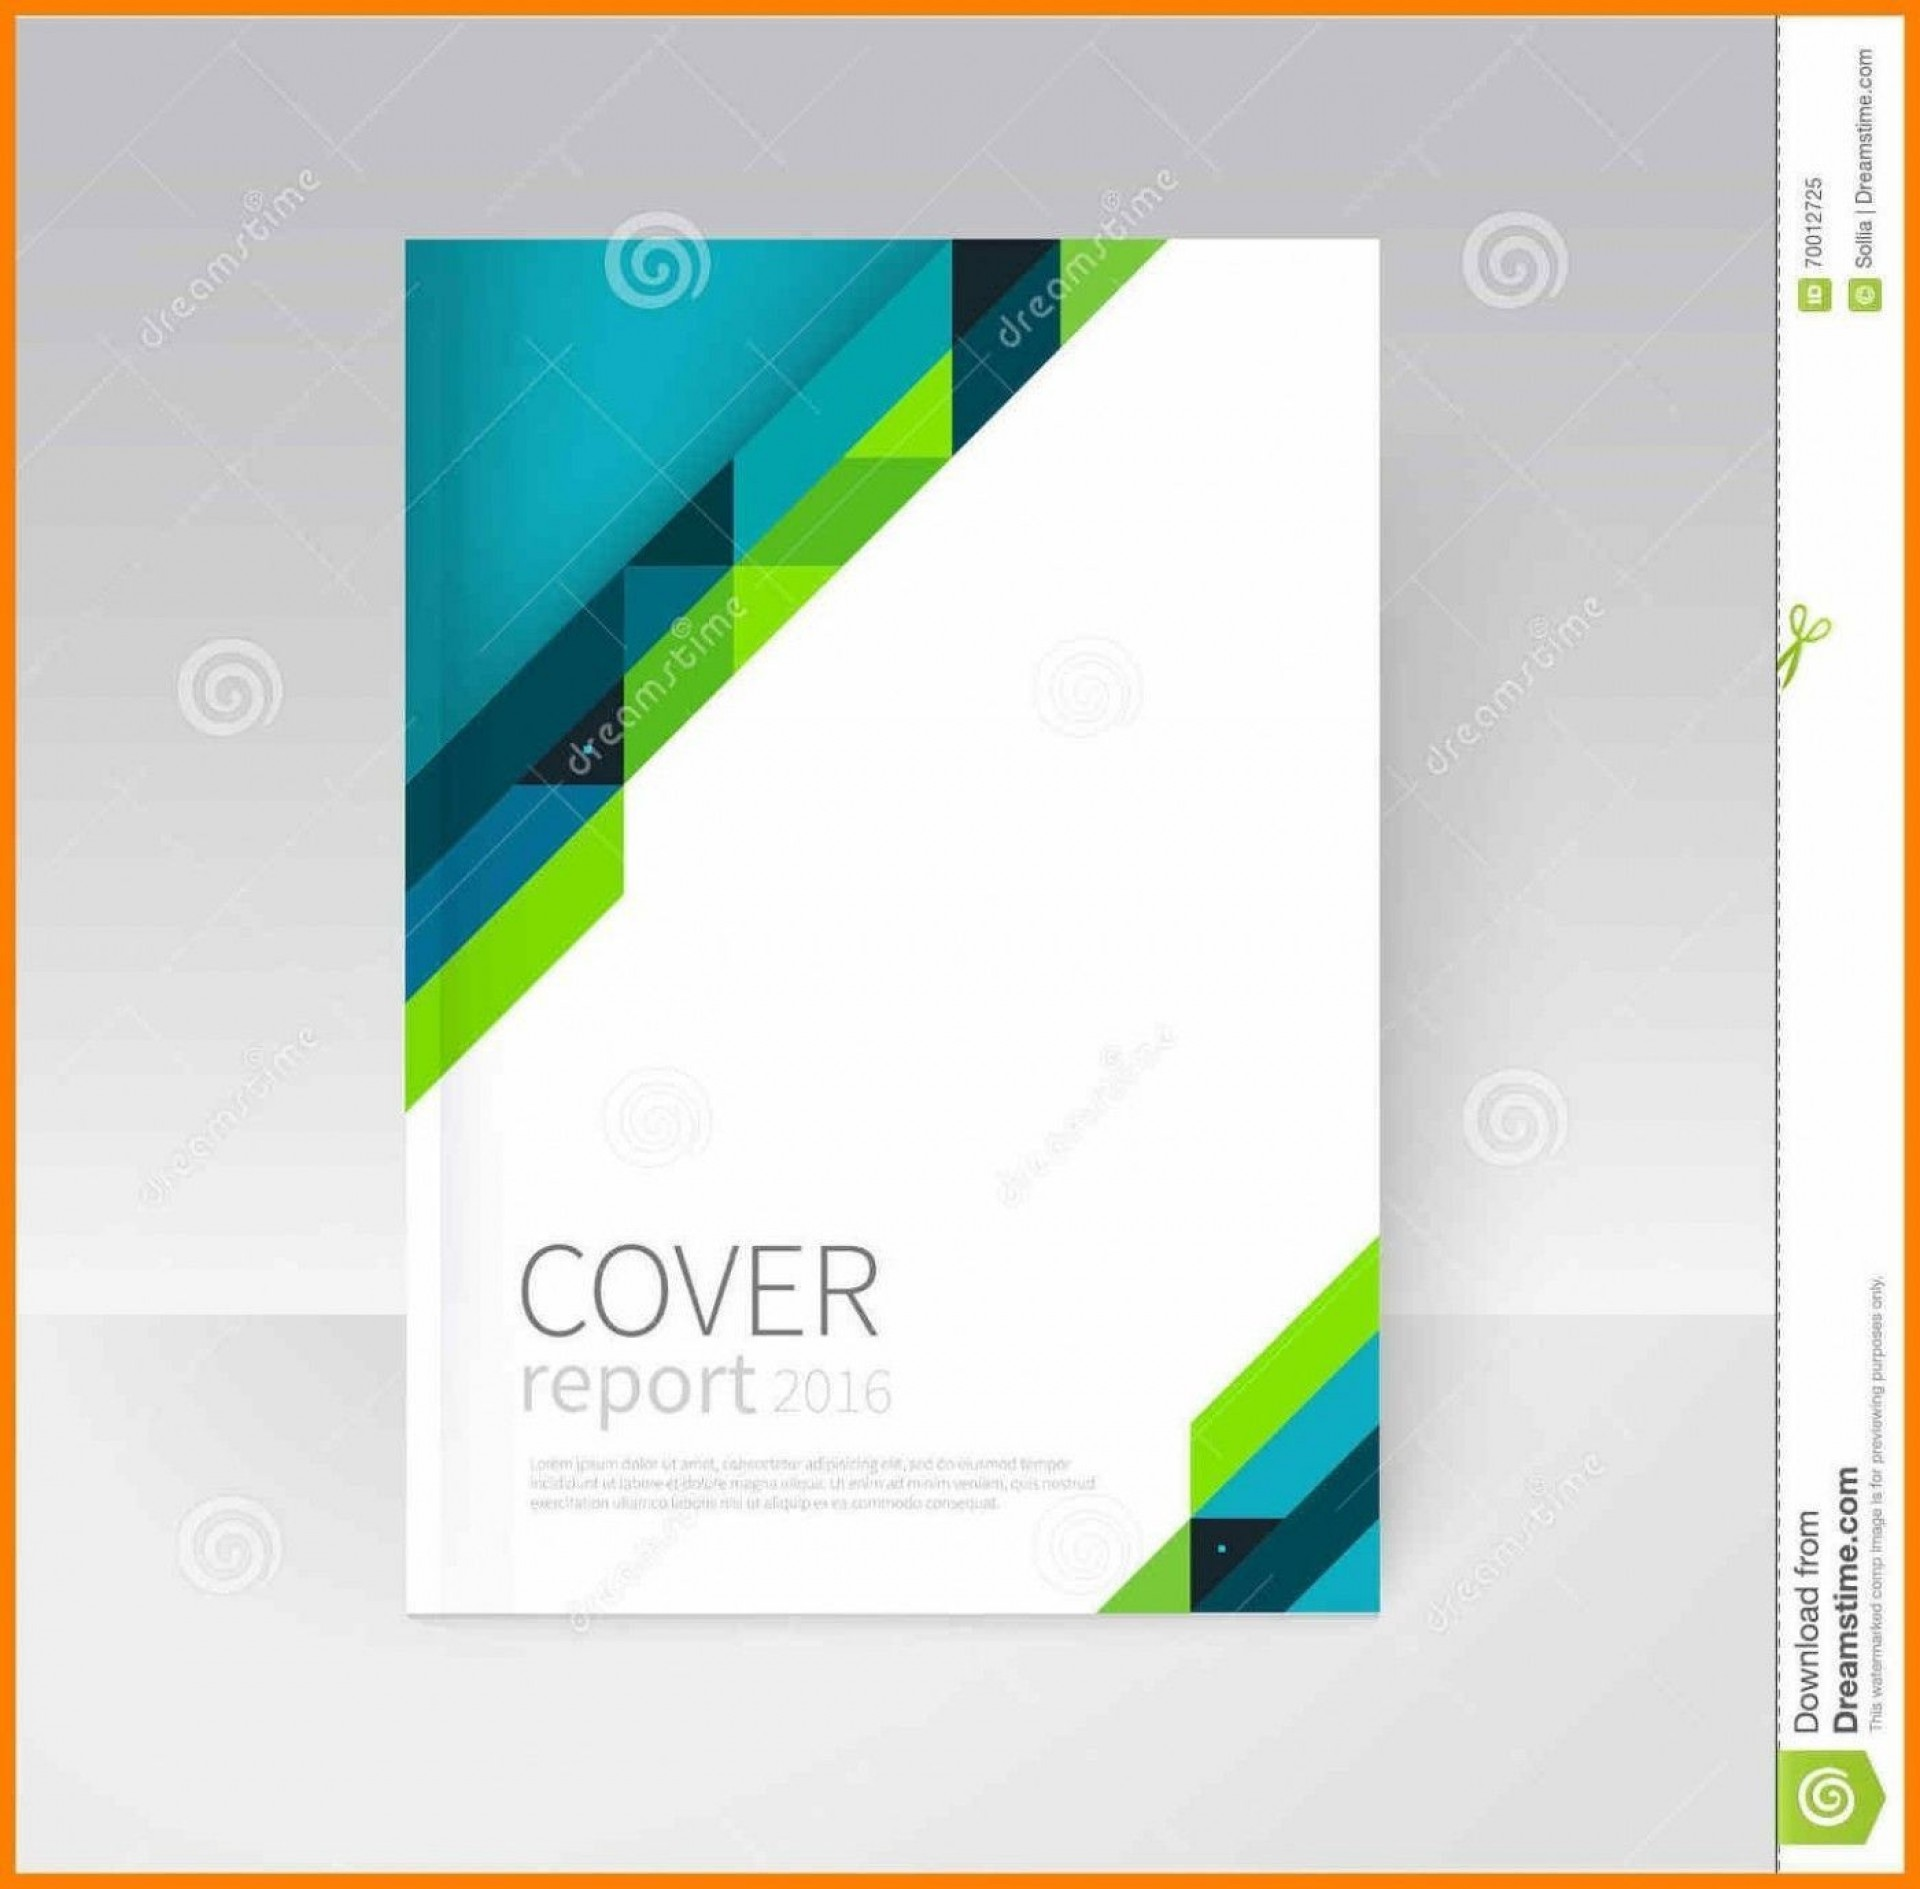 008 Beautiful Free Download Annual Report Cover Design Template Picture  Indesign In Word1920